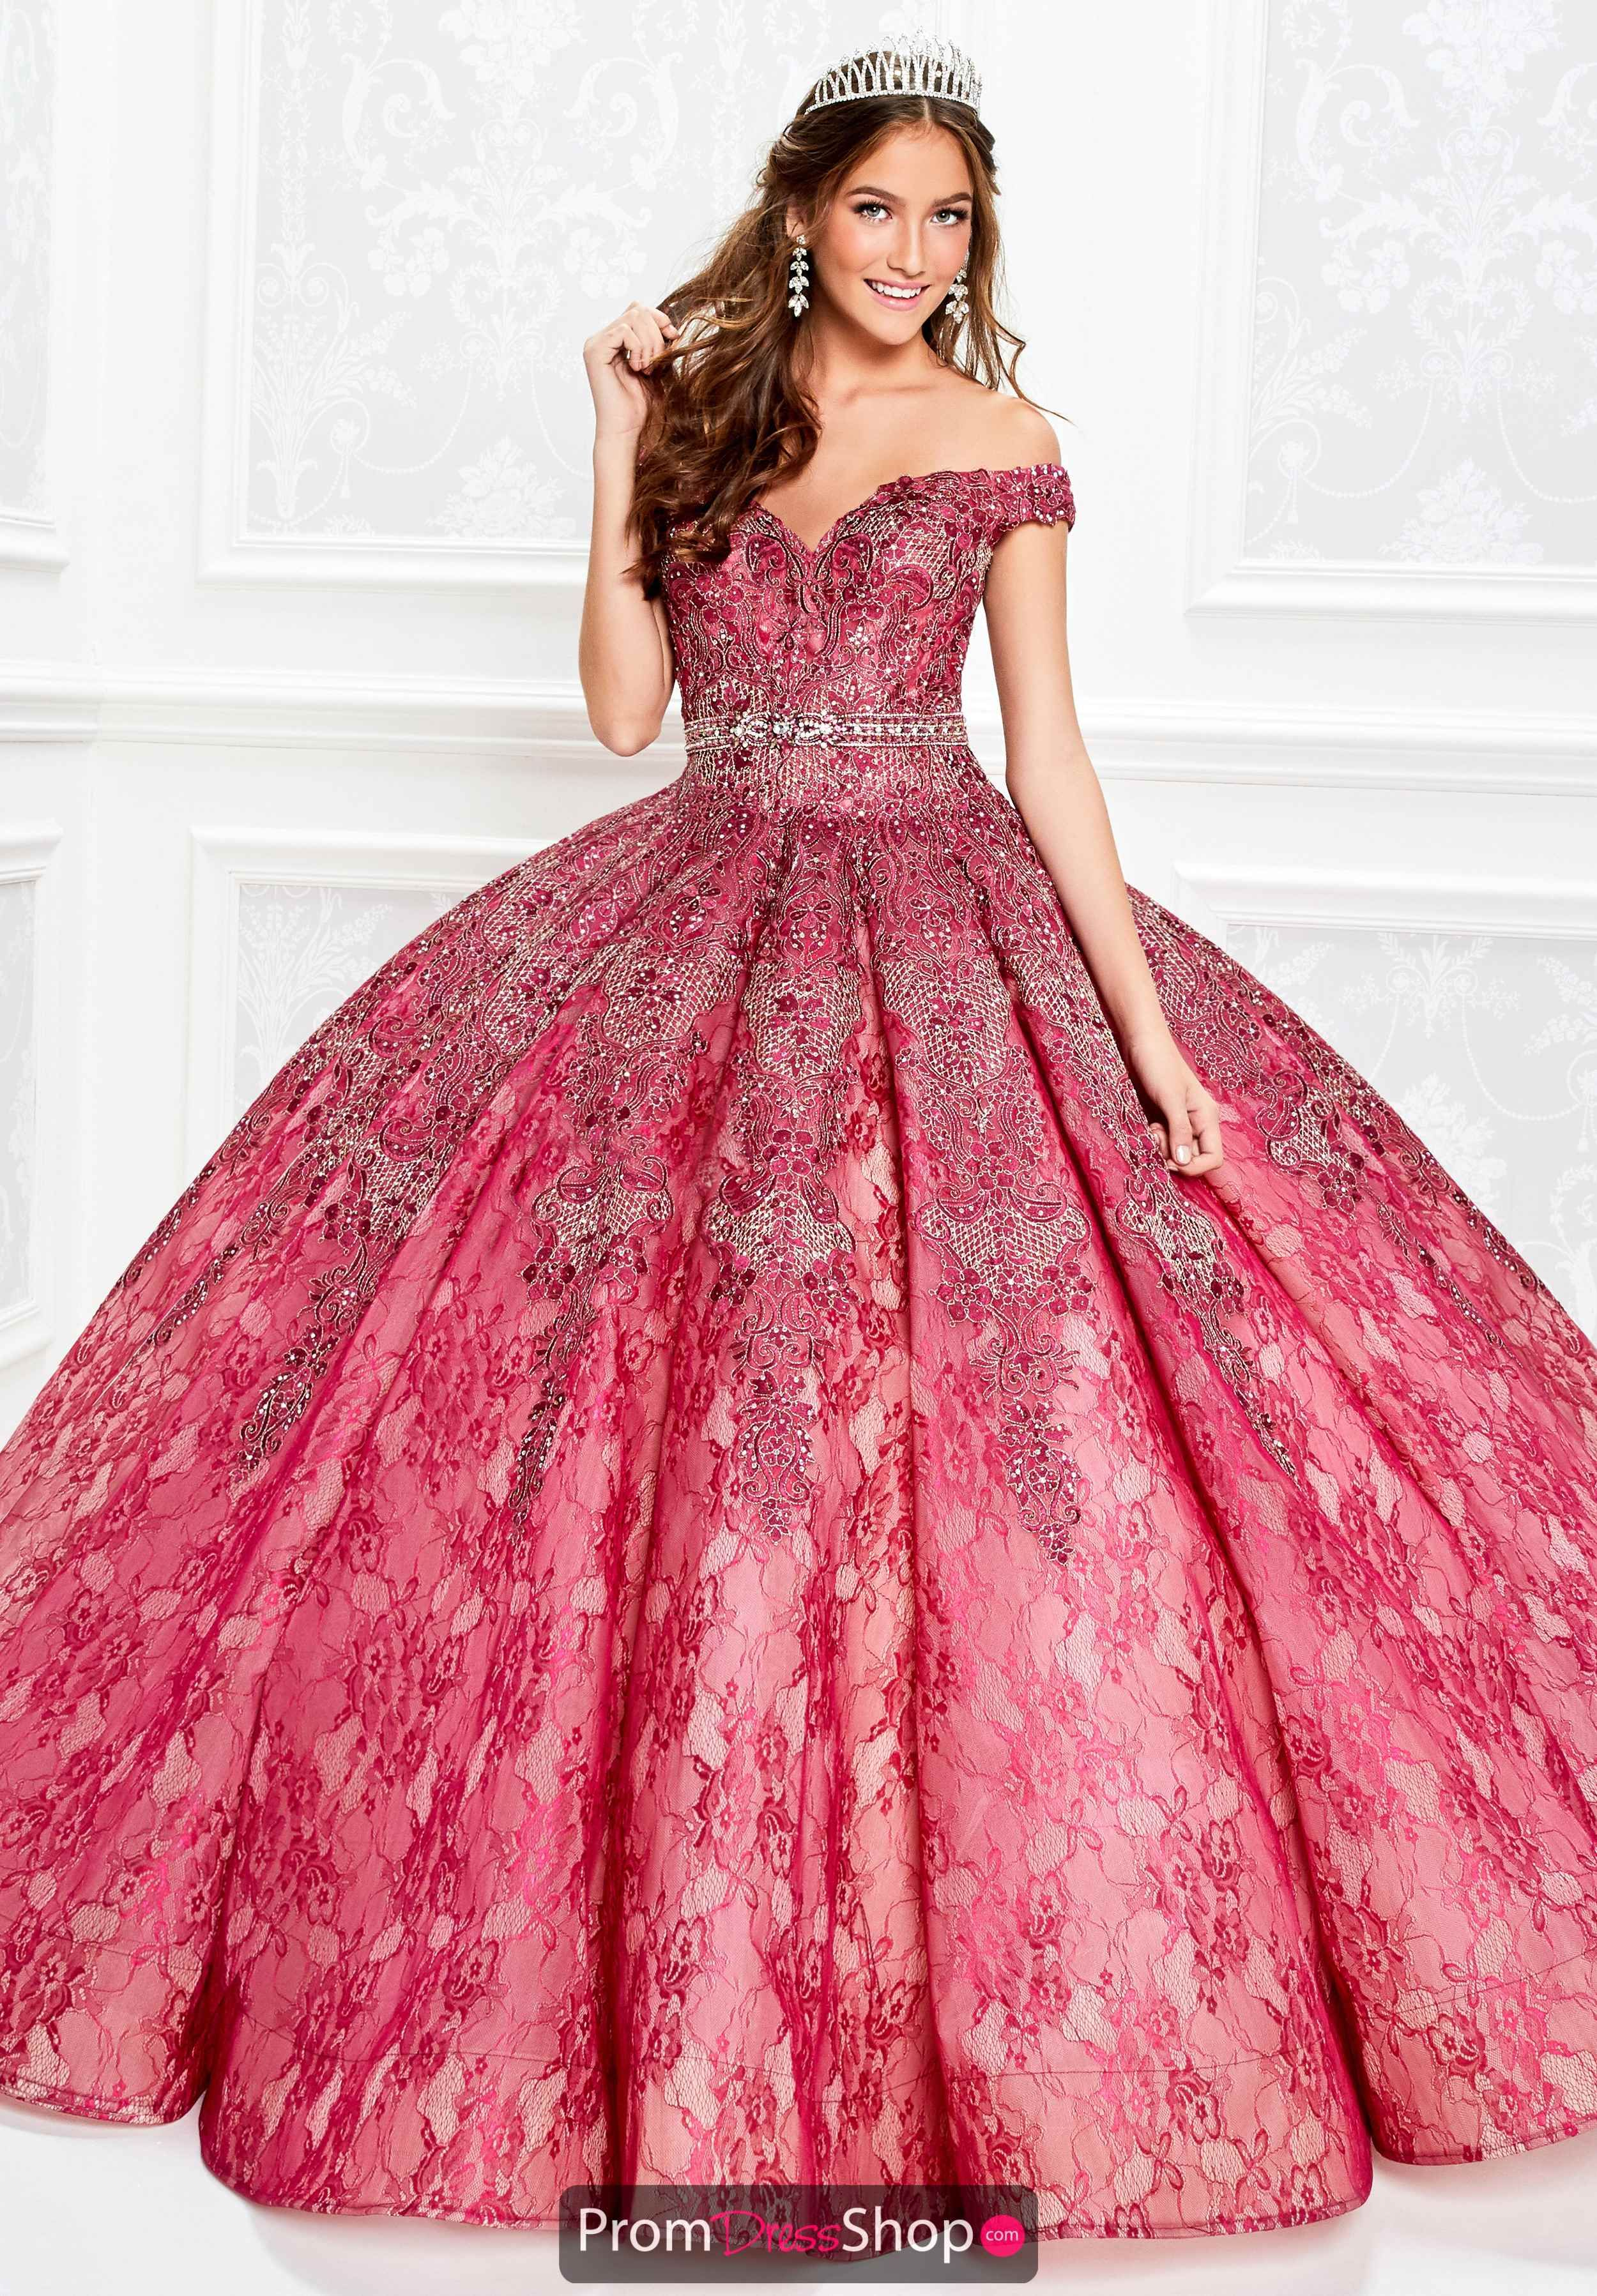 0fd0756419 Princesa Off the Shoulder Ball Gown PR11921 in 2019